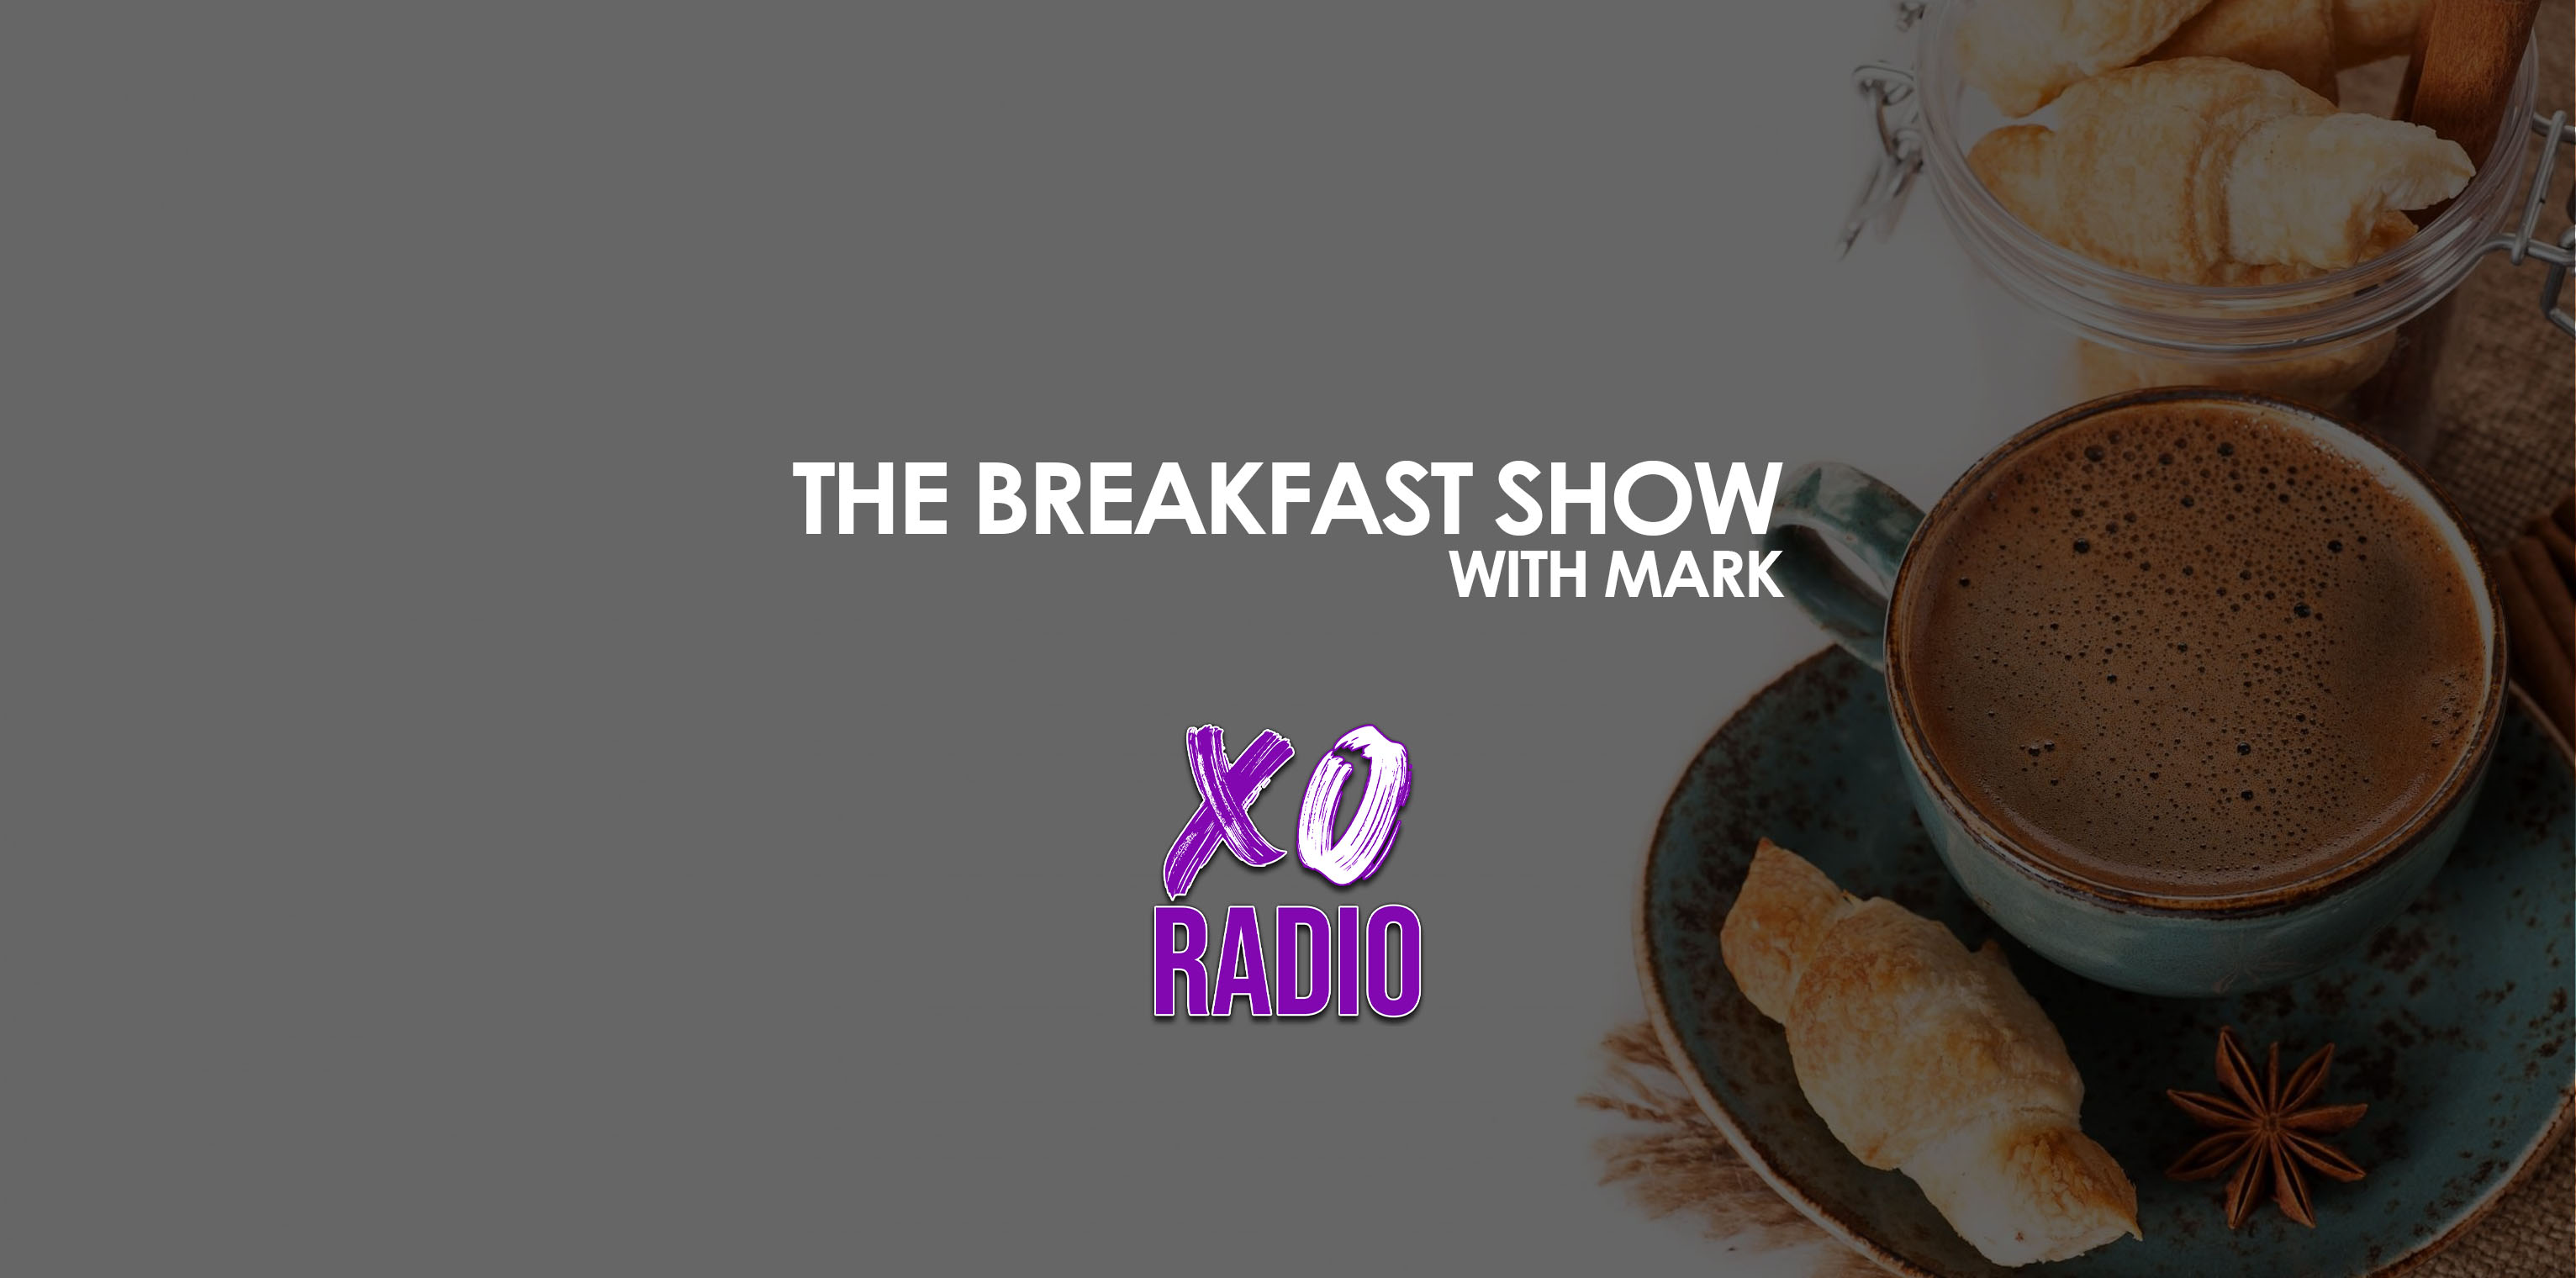 Breakfast Show With mark